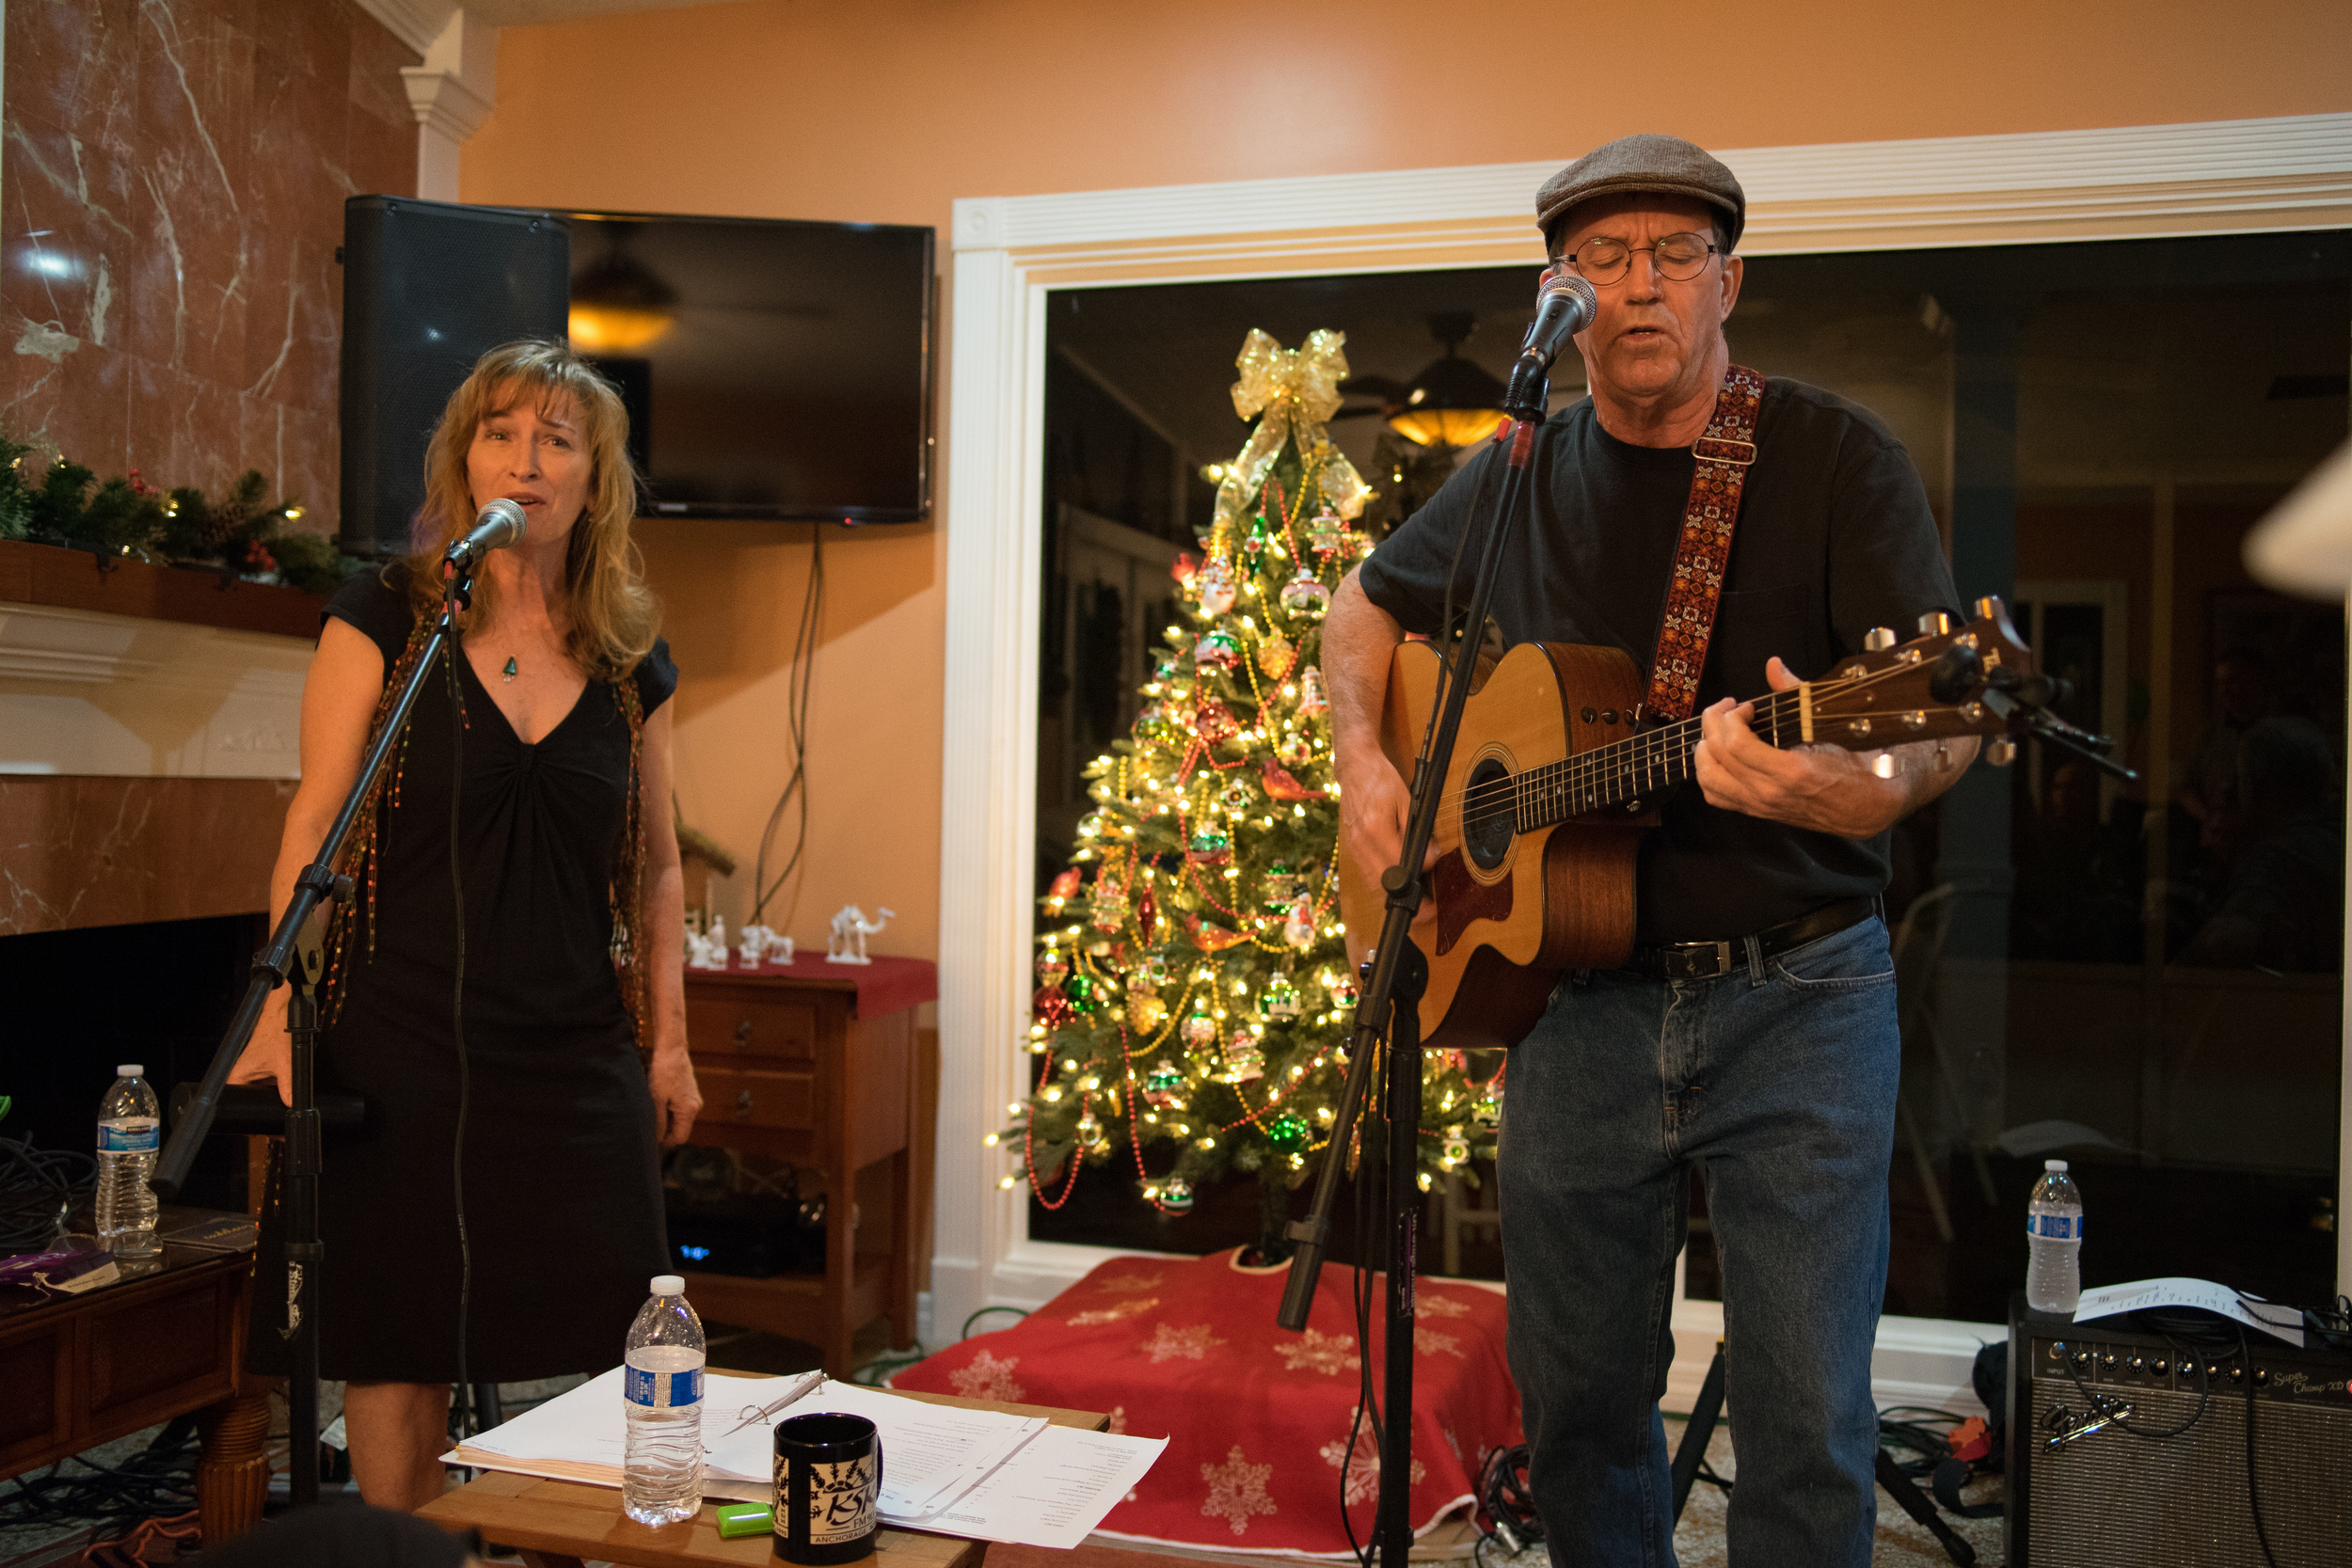 Mandy and Joe at St. Petersburg, FL House Concert December 12, 2015 , photo credit: Mitchel Frick